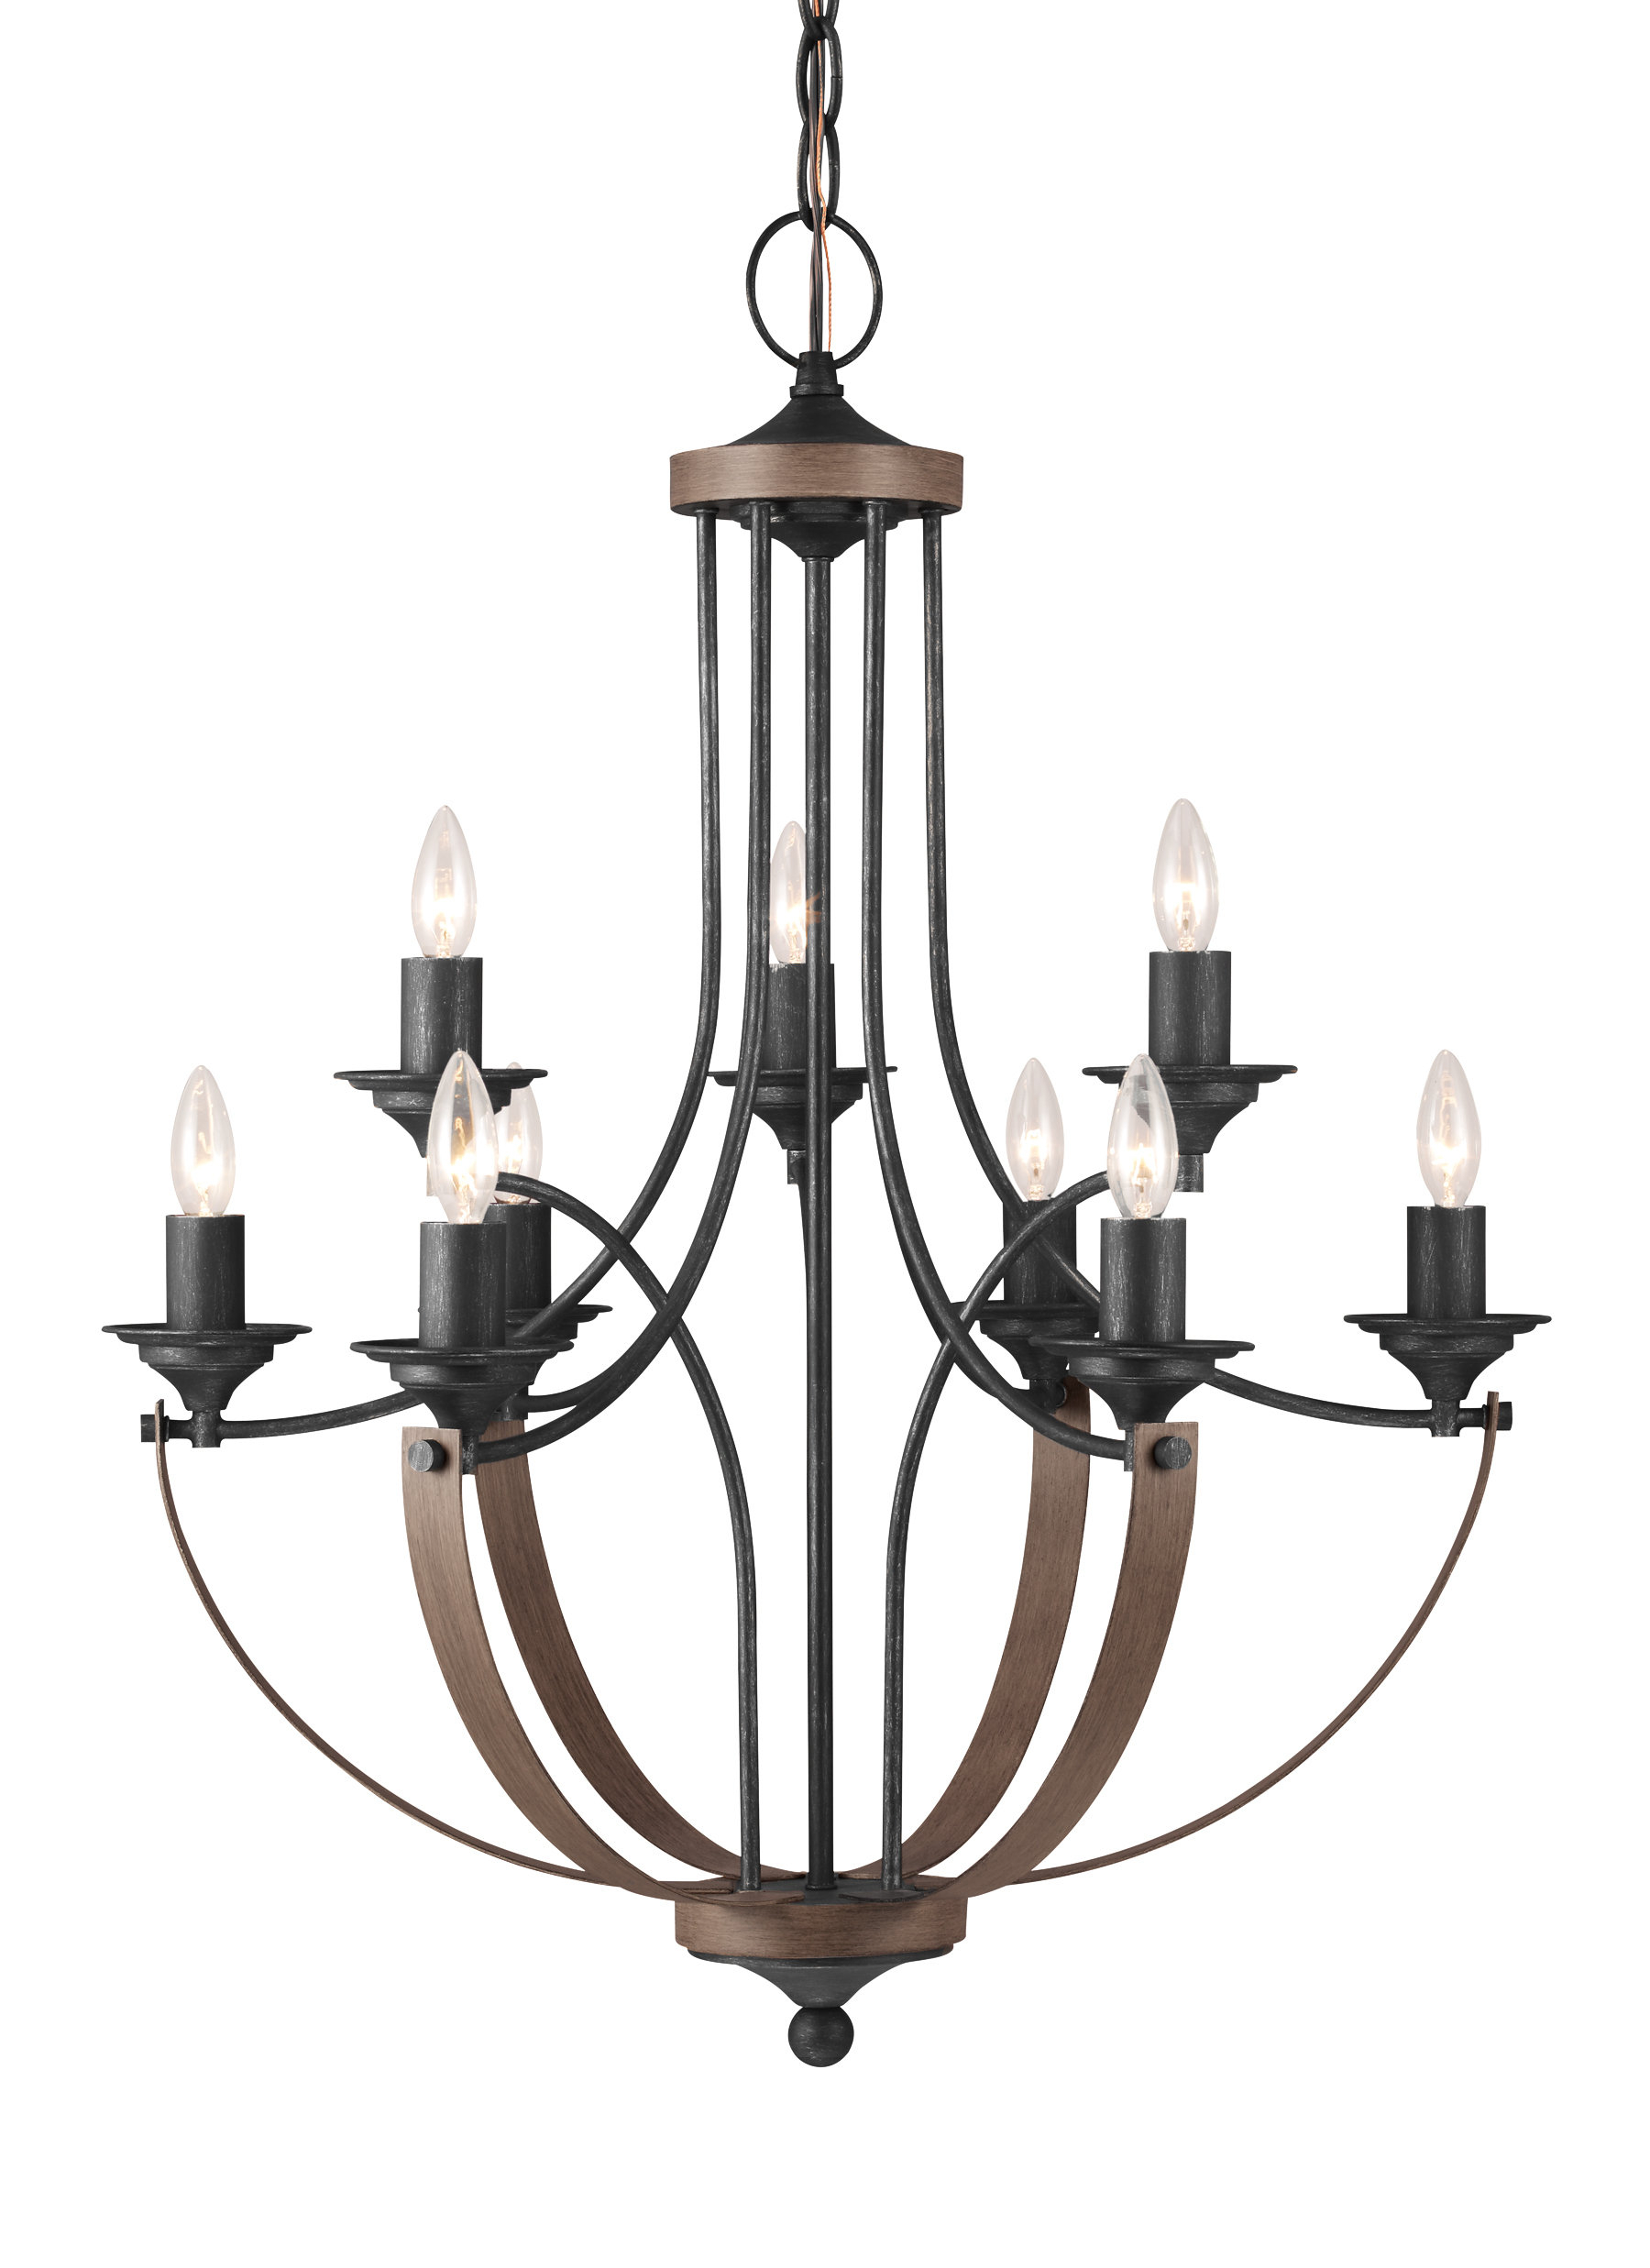 Camilla 9 Light Candle Style Chandelier With Regard To Newest Giverny 9 Light Candle Style Chandeliers (View 2 of 20)